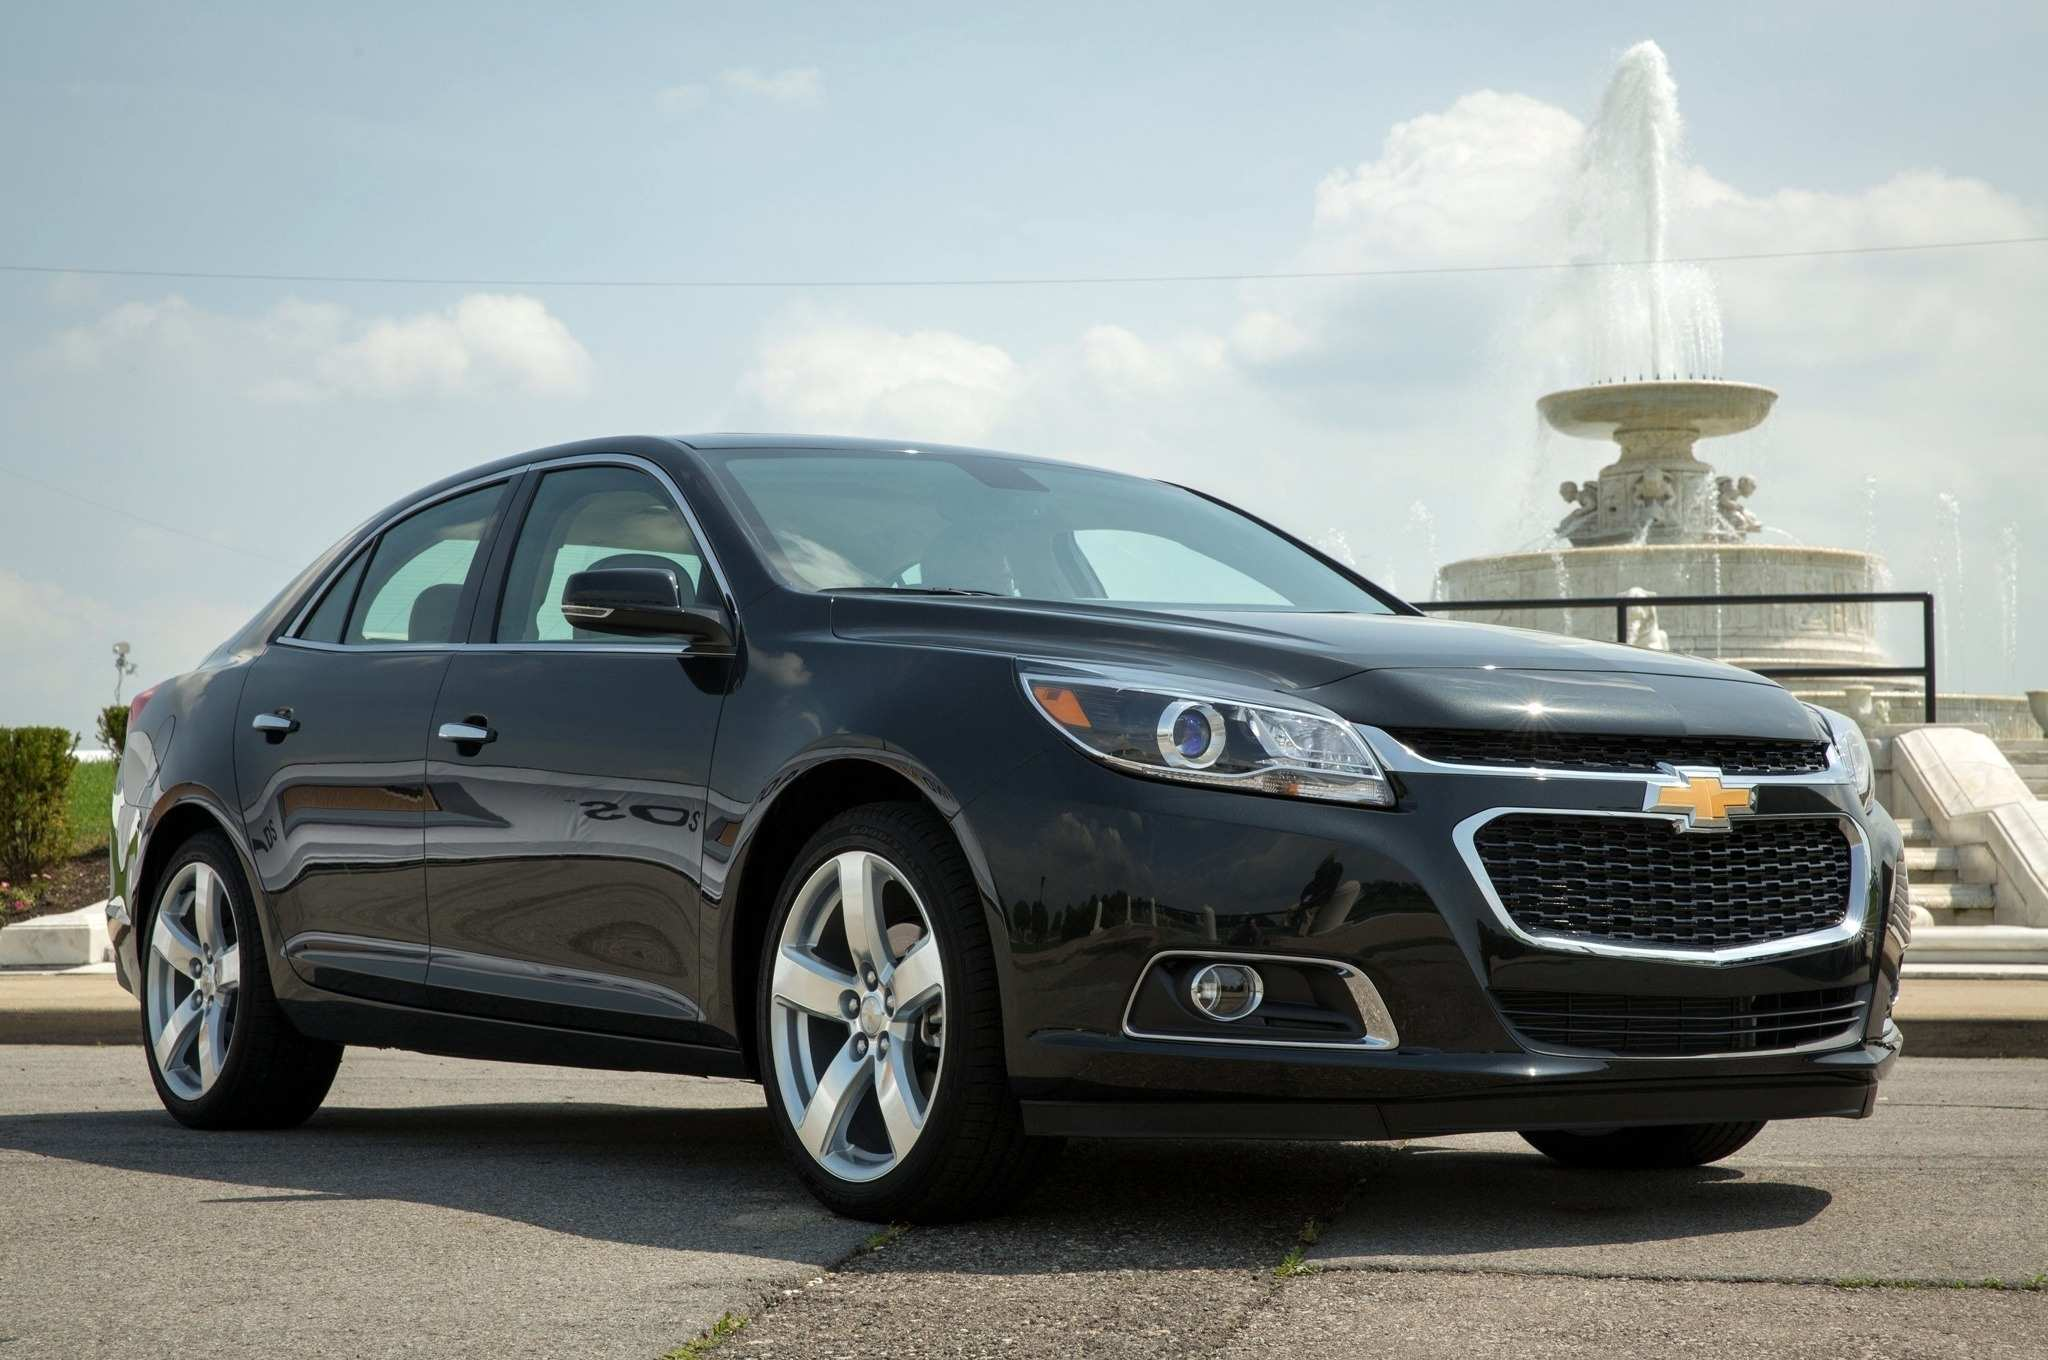 27 Best Review New Chevrolet Malibu 2019 Release Date Exterior And Interior Review New Review for New Chevrolet Malibu 2019 Release Date Exterior And Interior Review